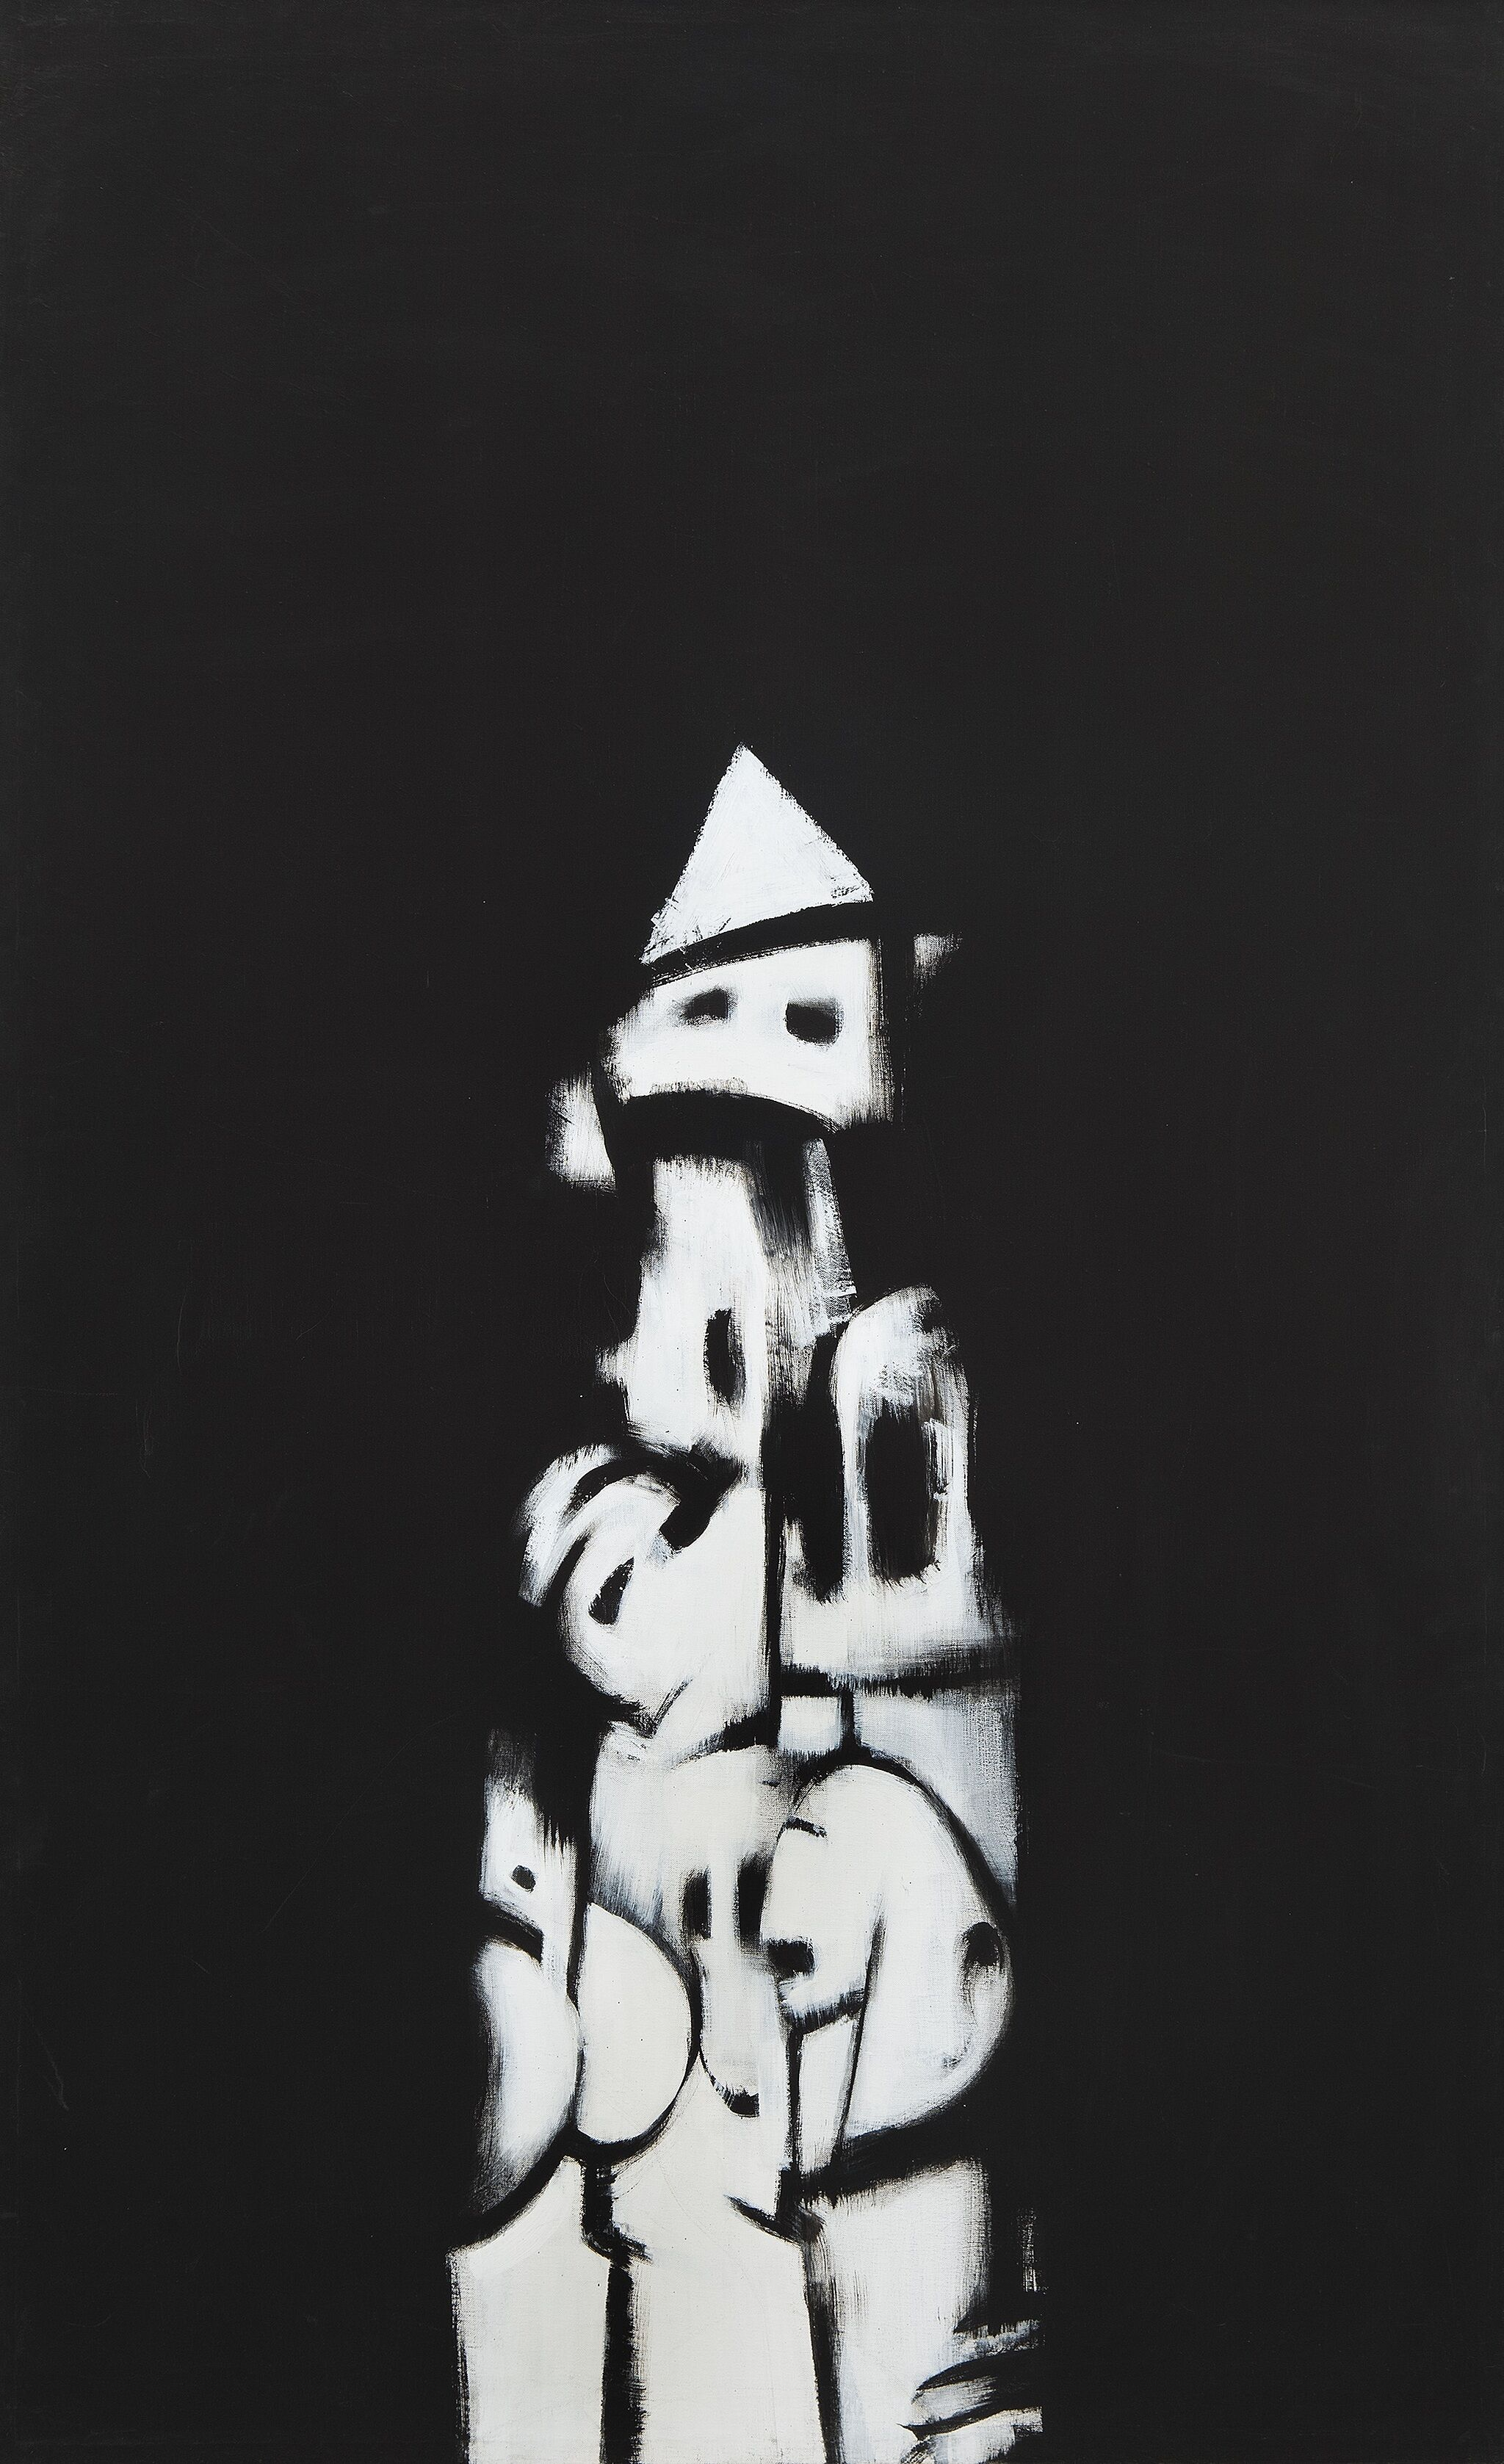 A painting with a black background and white totem-like central figure